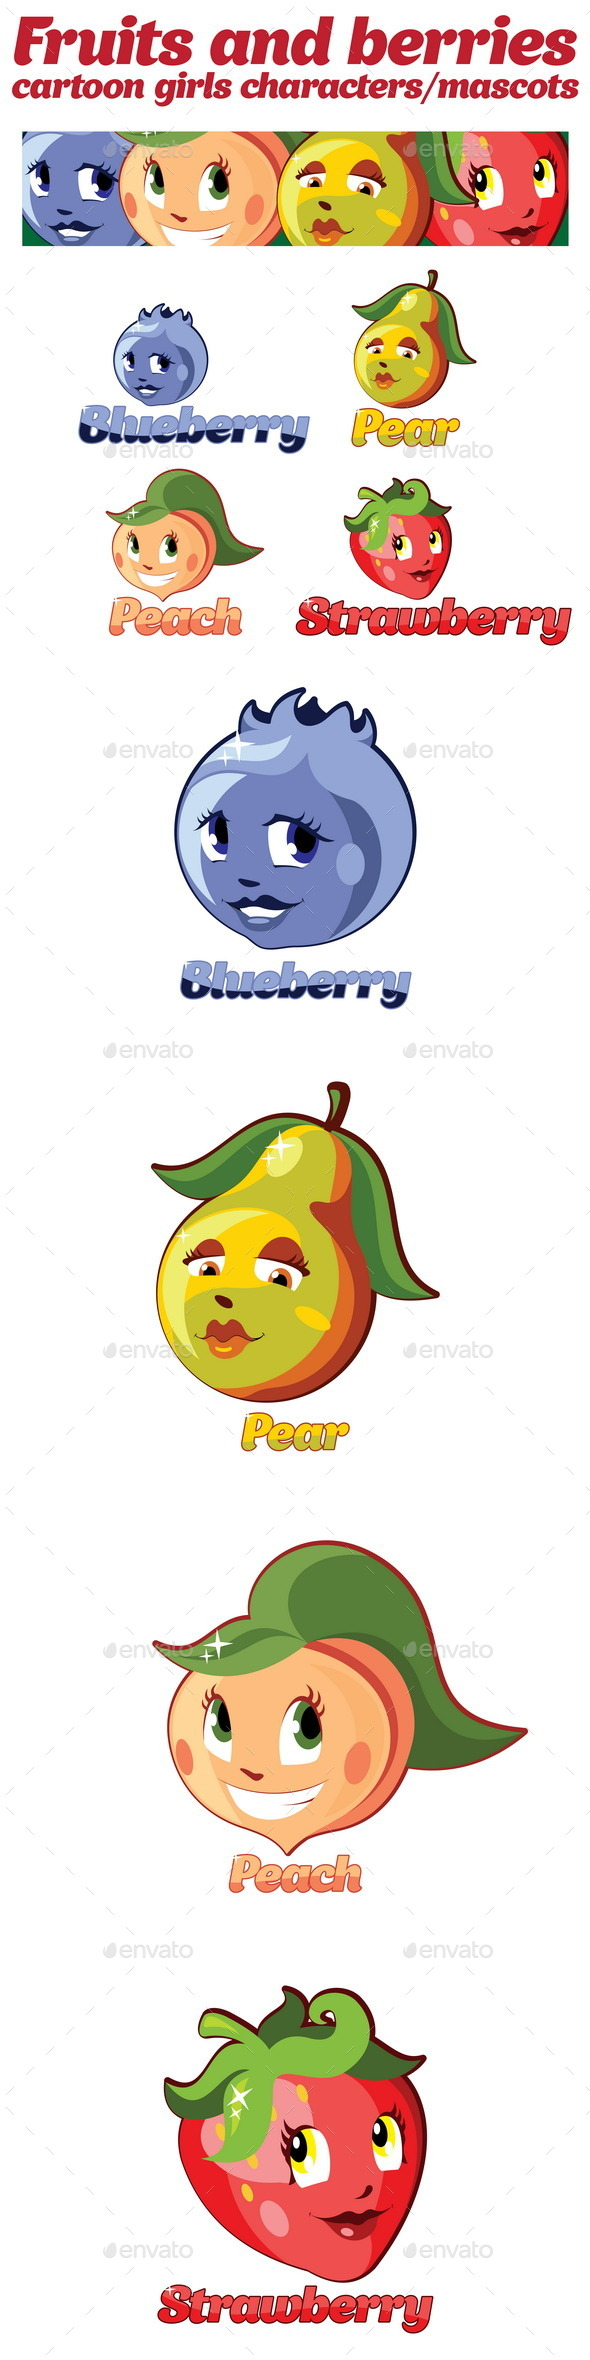 GraphicRiver Fruits and Berries Cartoon Characters Mascots 9183965